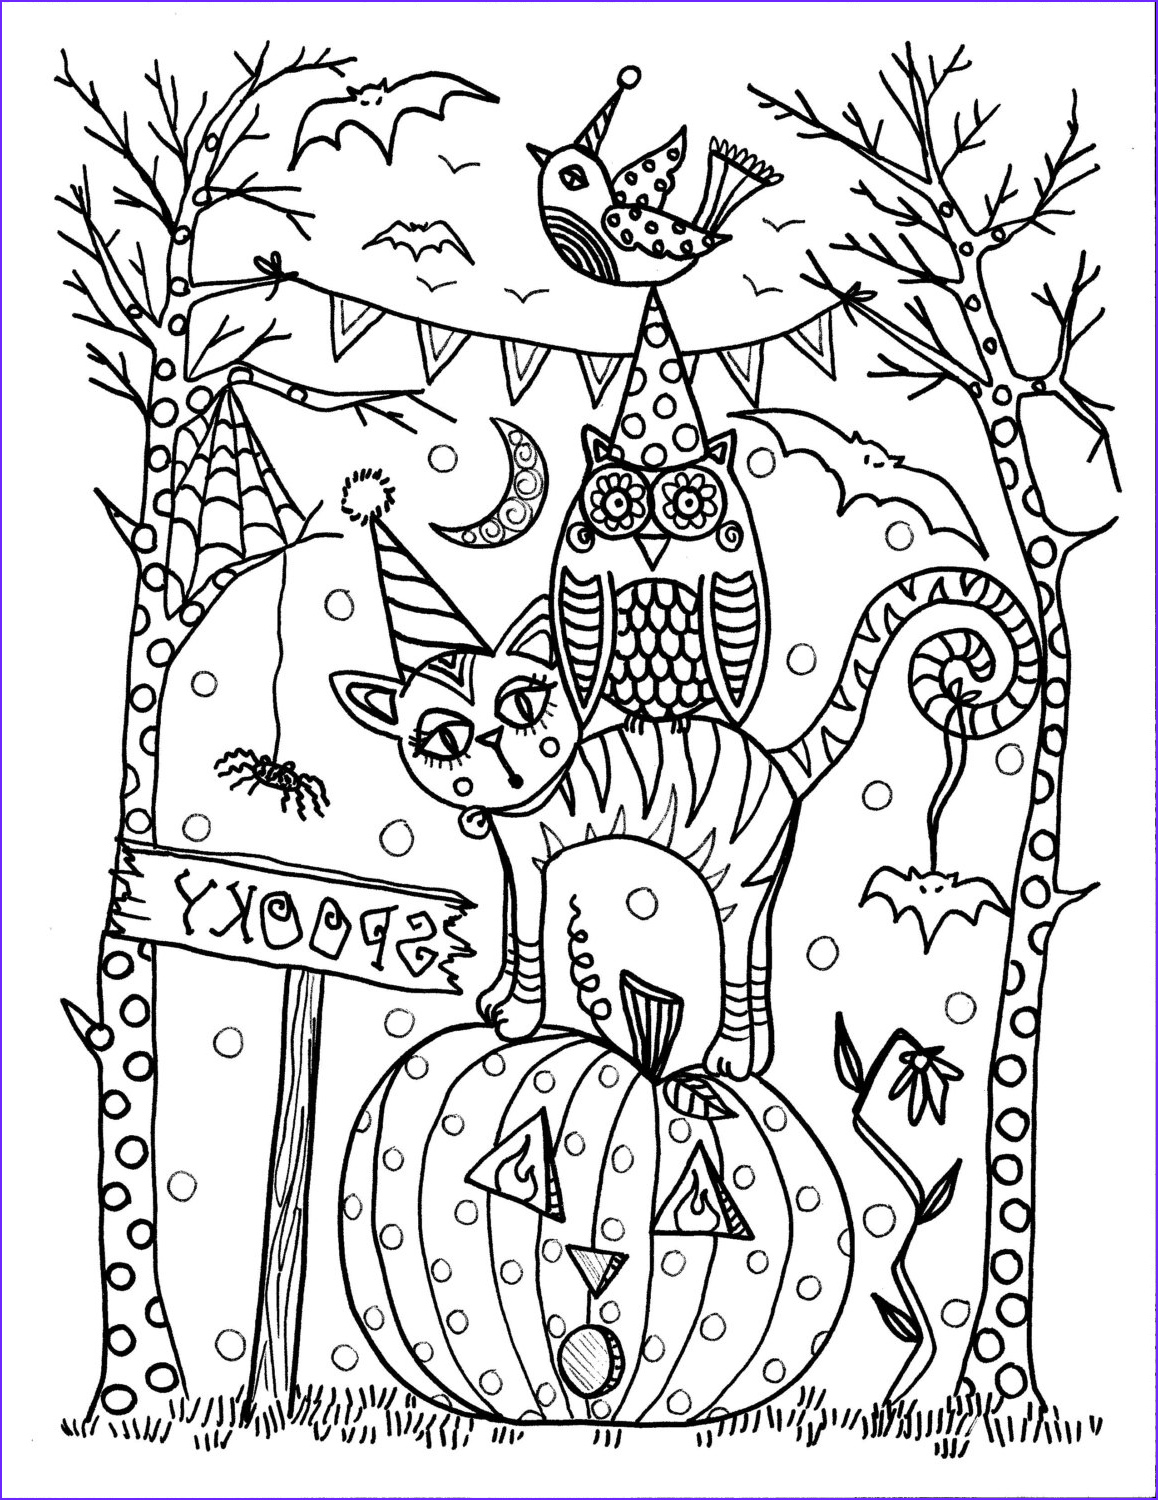 Halloween Coloring Book Page Unique Collection 5 Pages Instant Download Halloween Coloring Pages 5